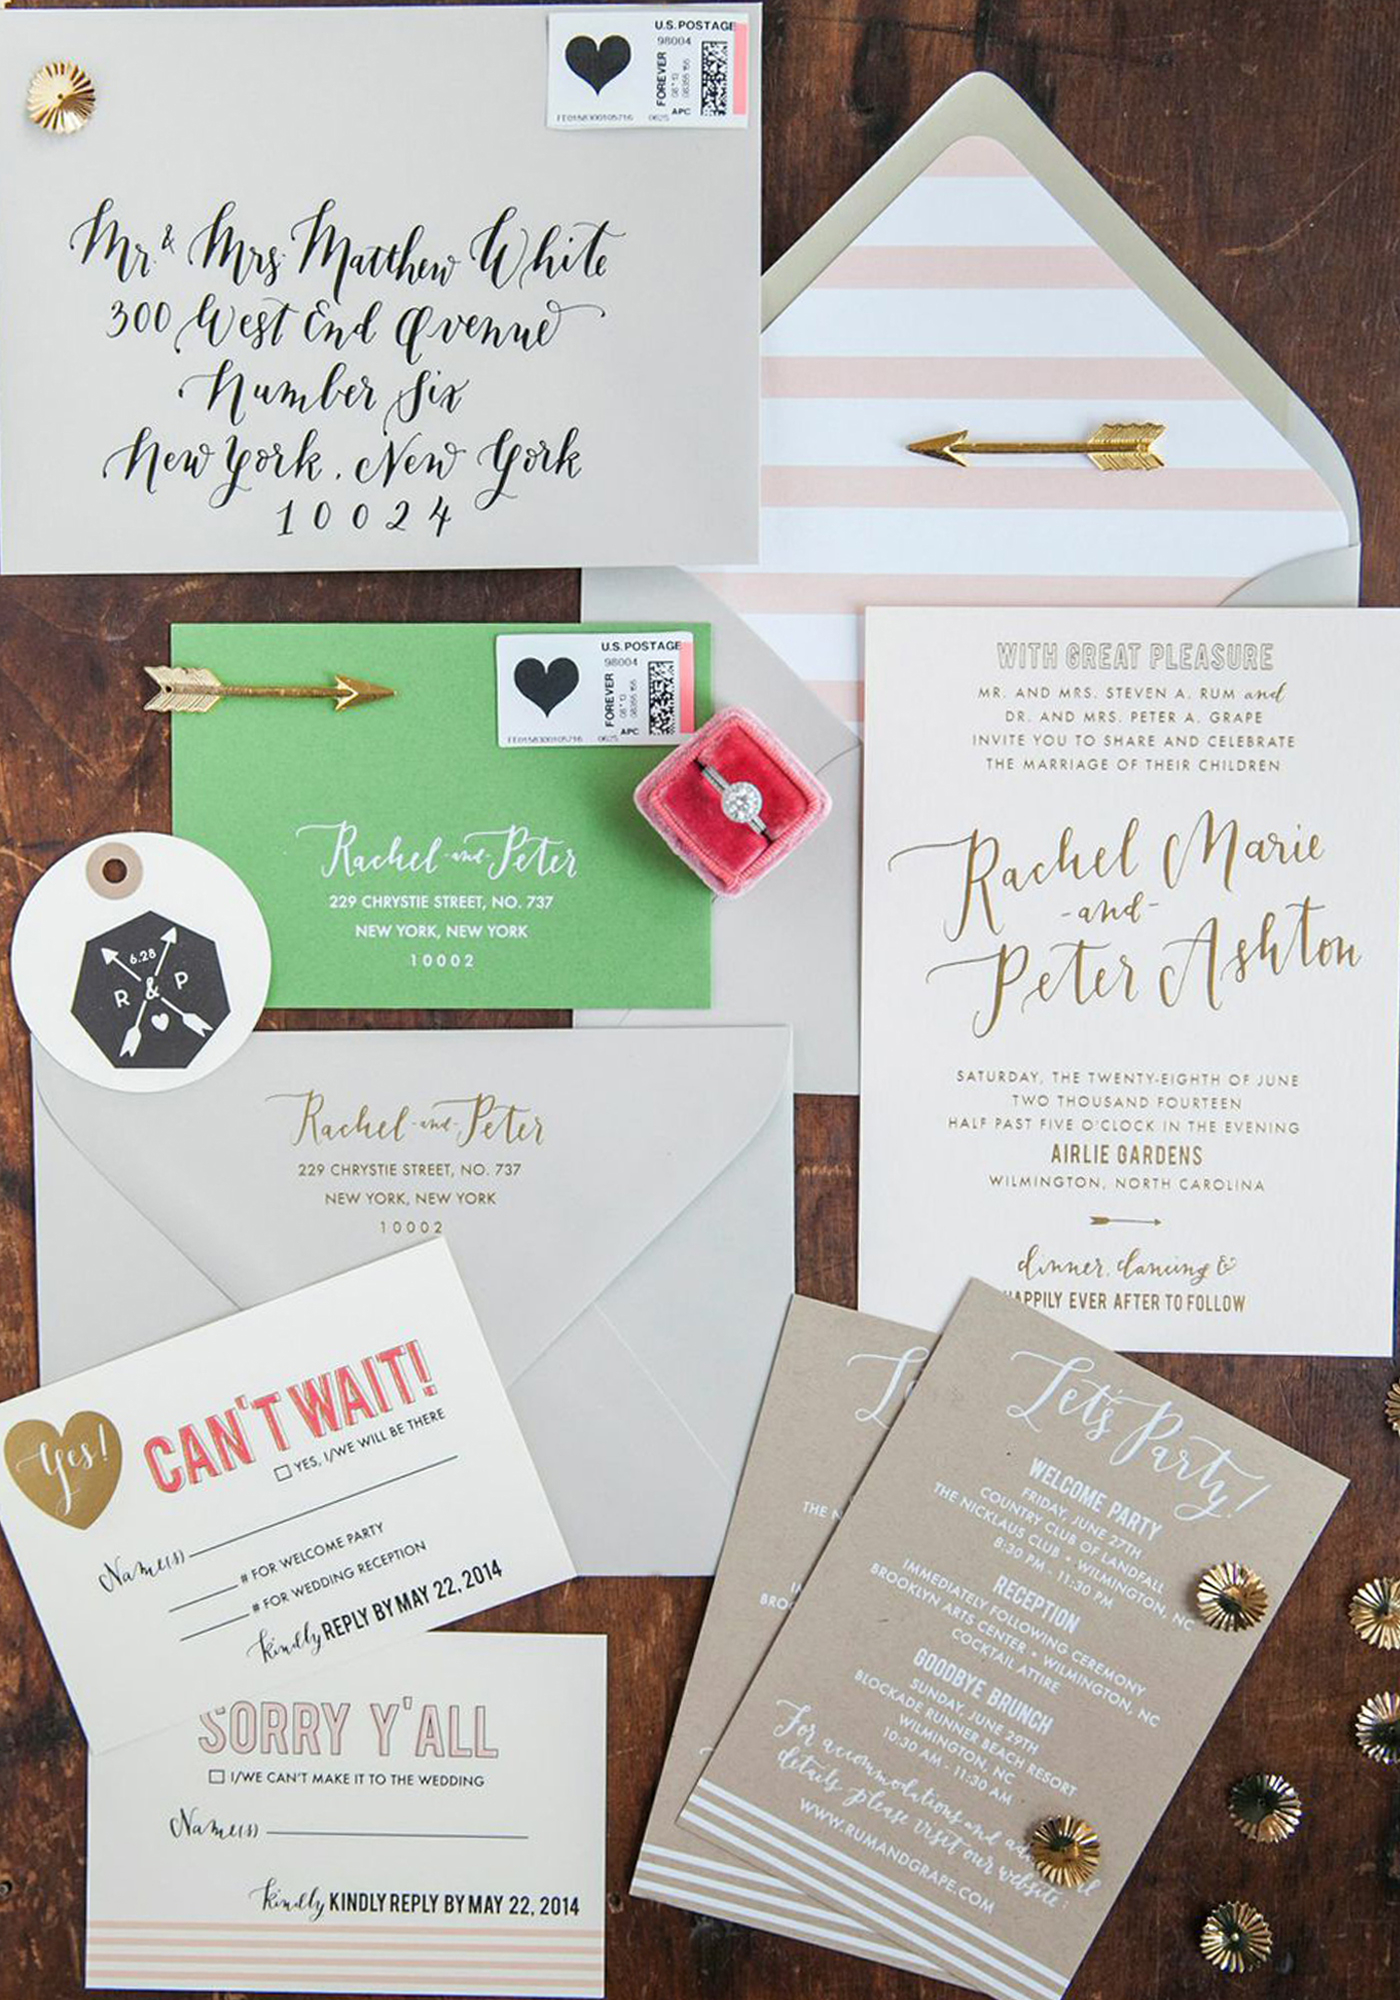 la Happy Invitation Set